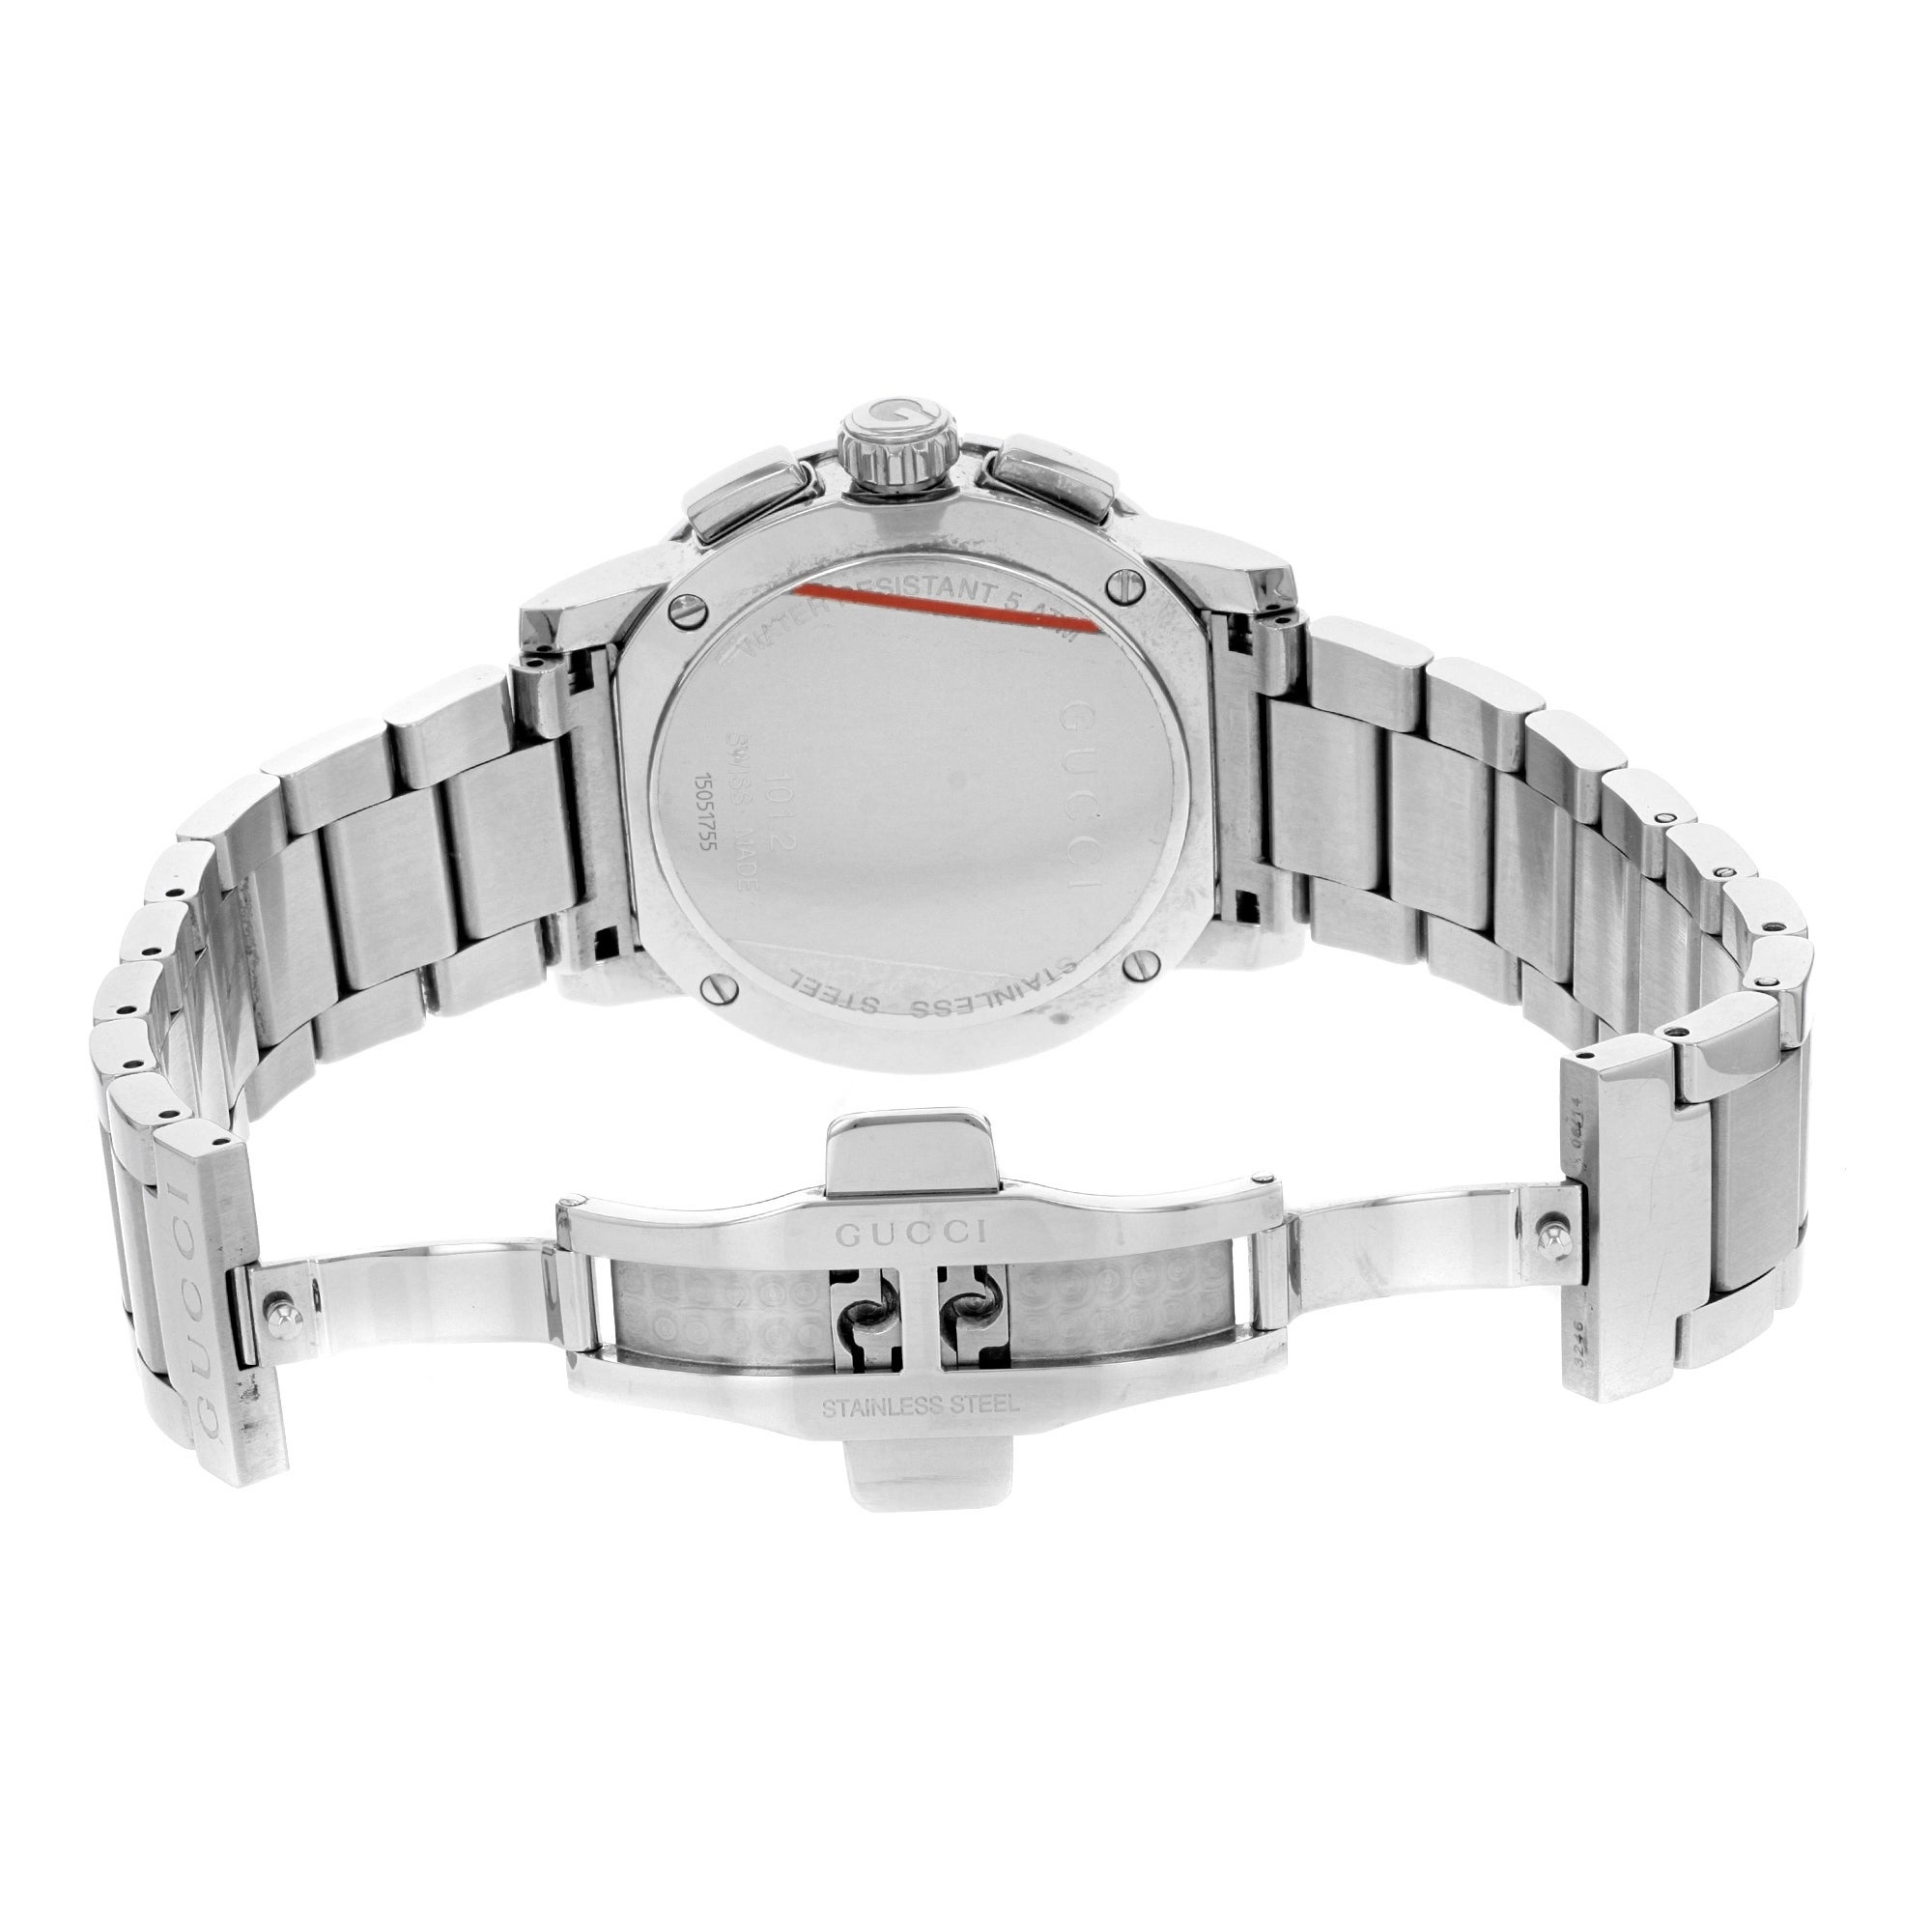 5e48c9895f7 Shop Gucci G-Chrono YA101201 Stainless Steel Quartz Men s Watch - Free  Shipping Today - Overstock - 17669160